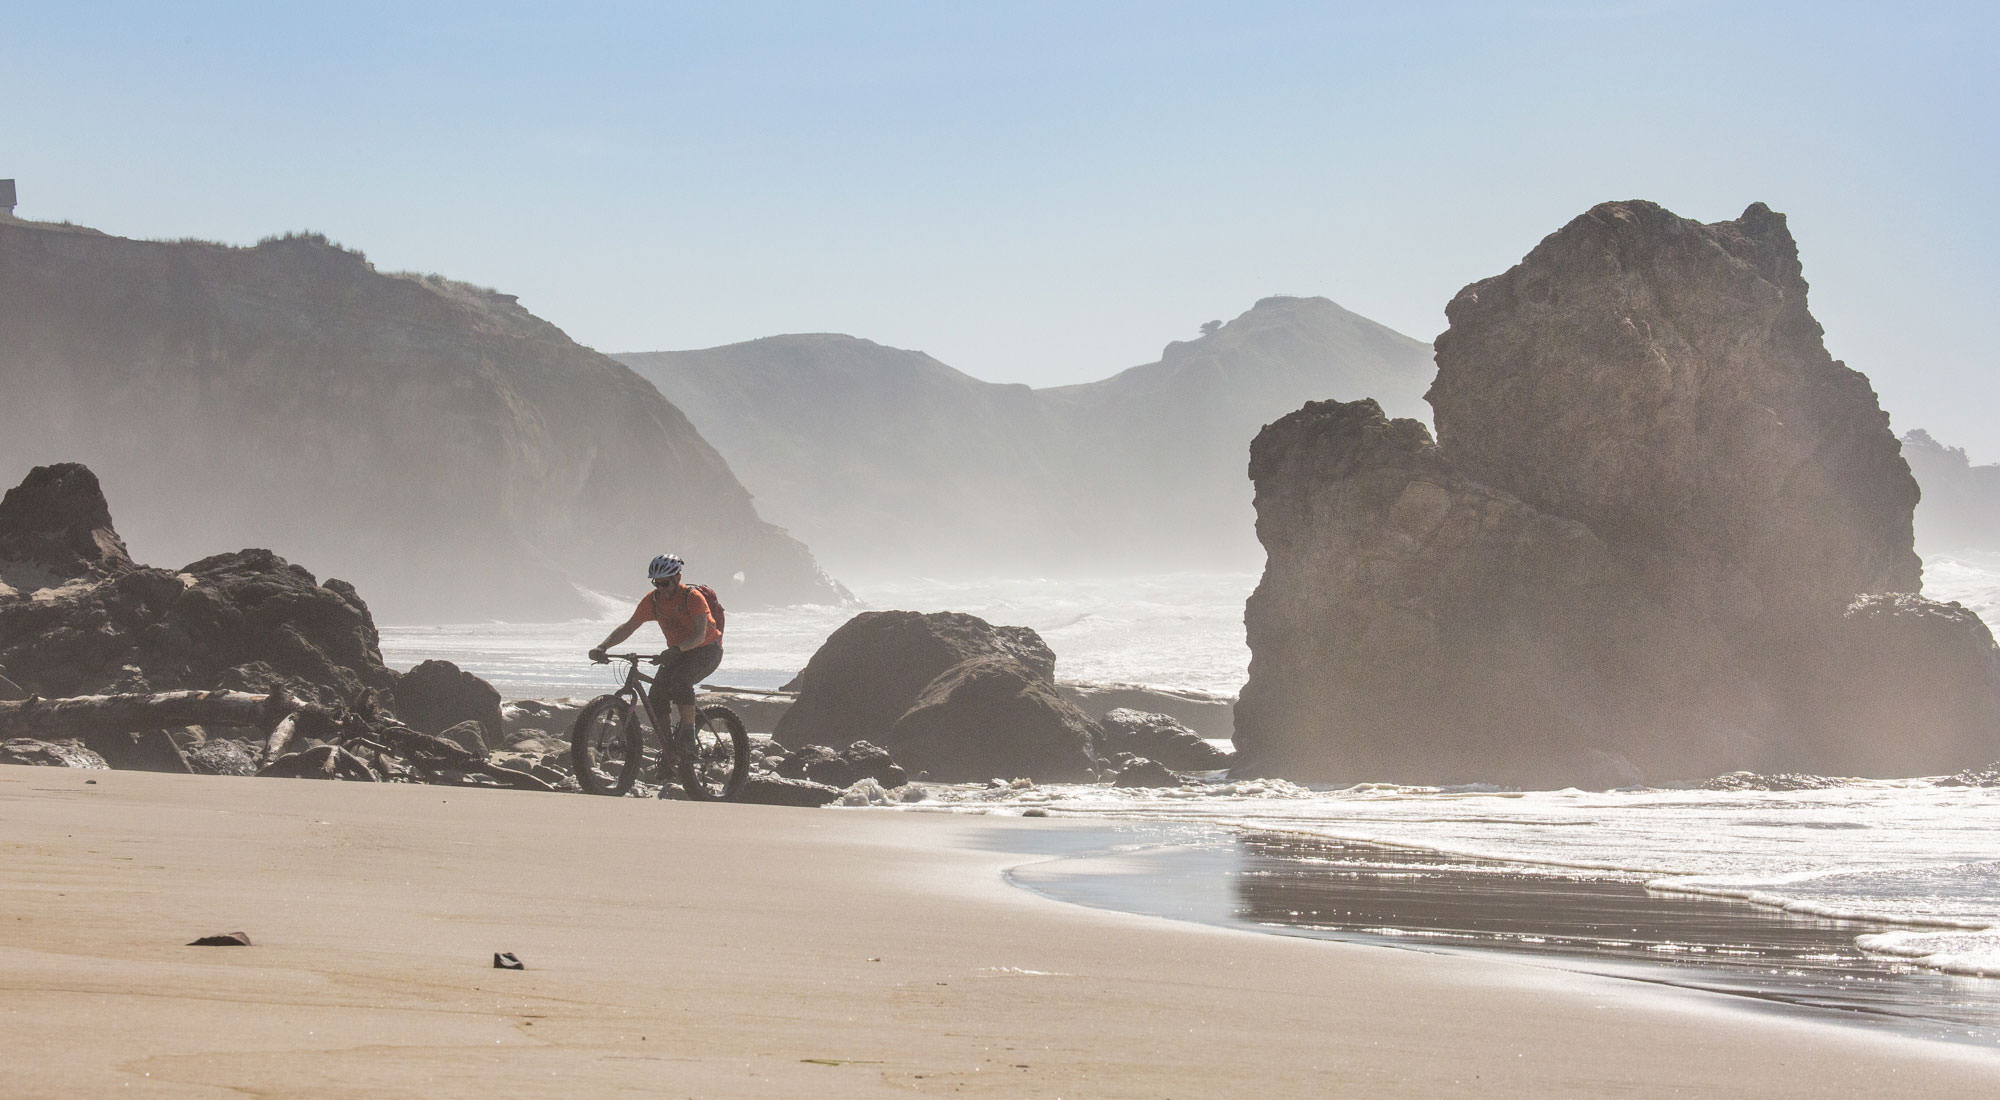 Man rides fat bike around large rock formations on the shoreline.